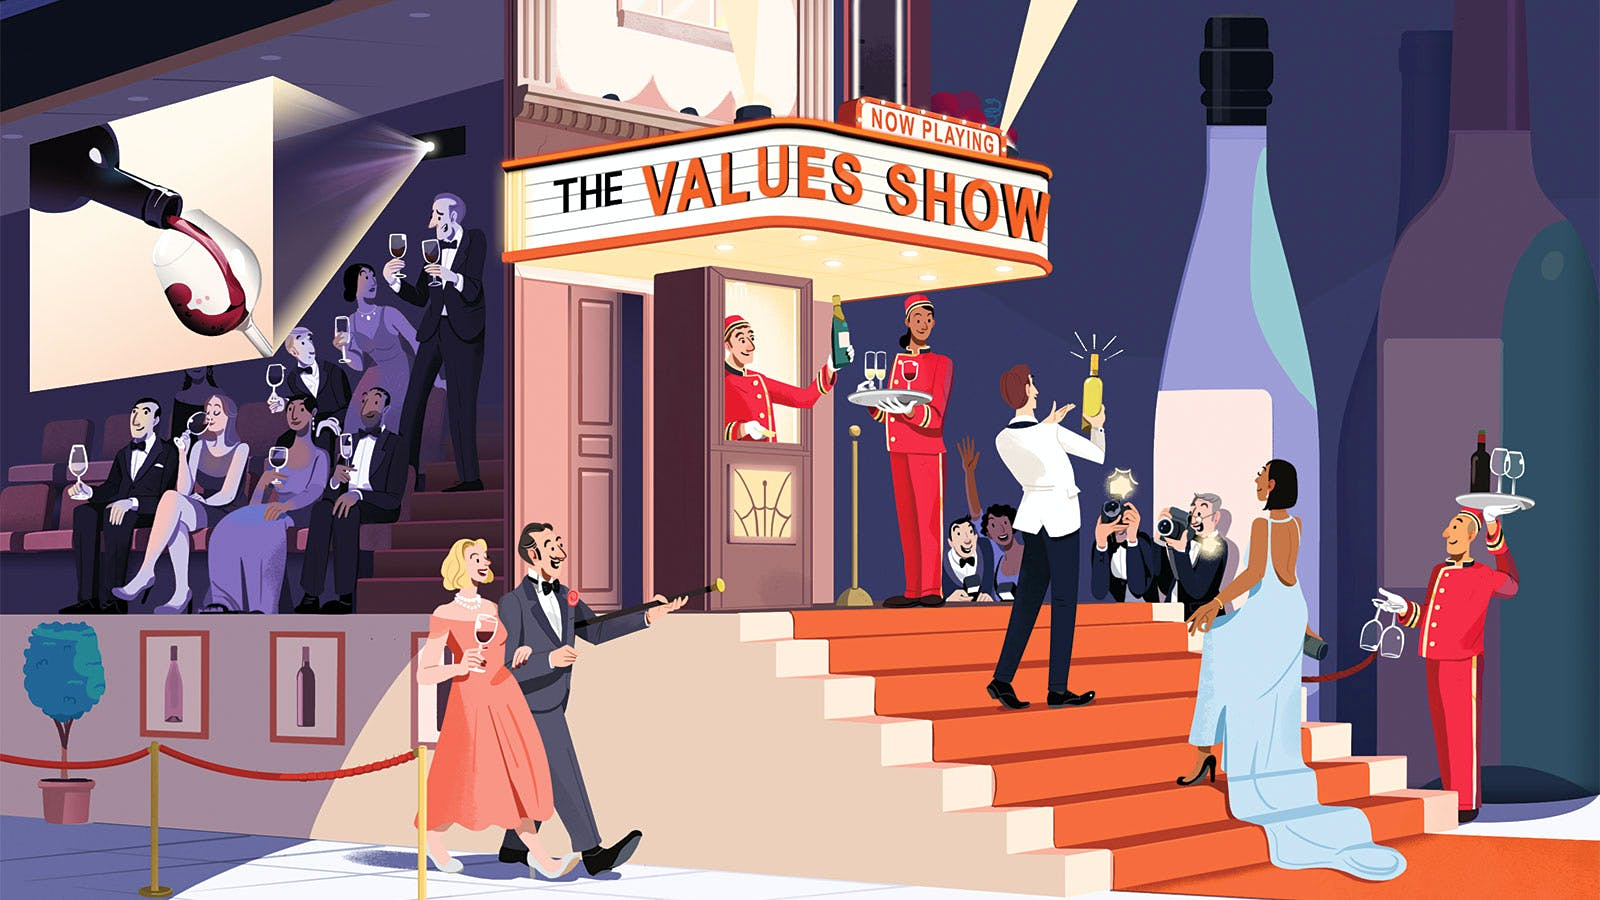 The Values Show